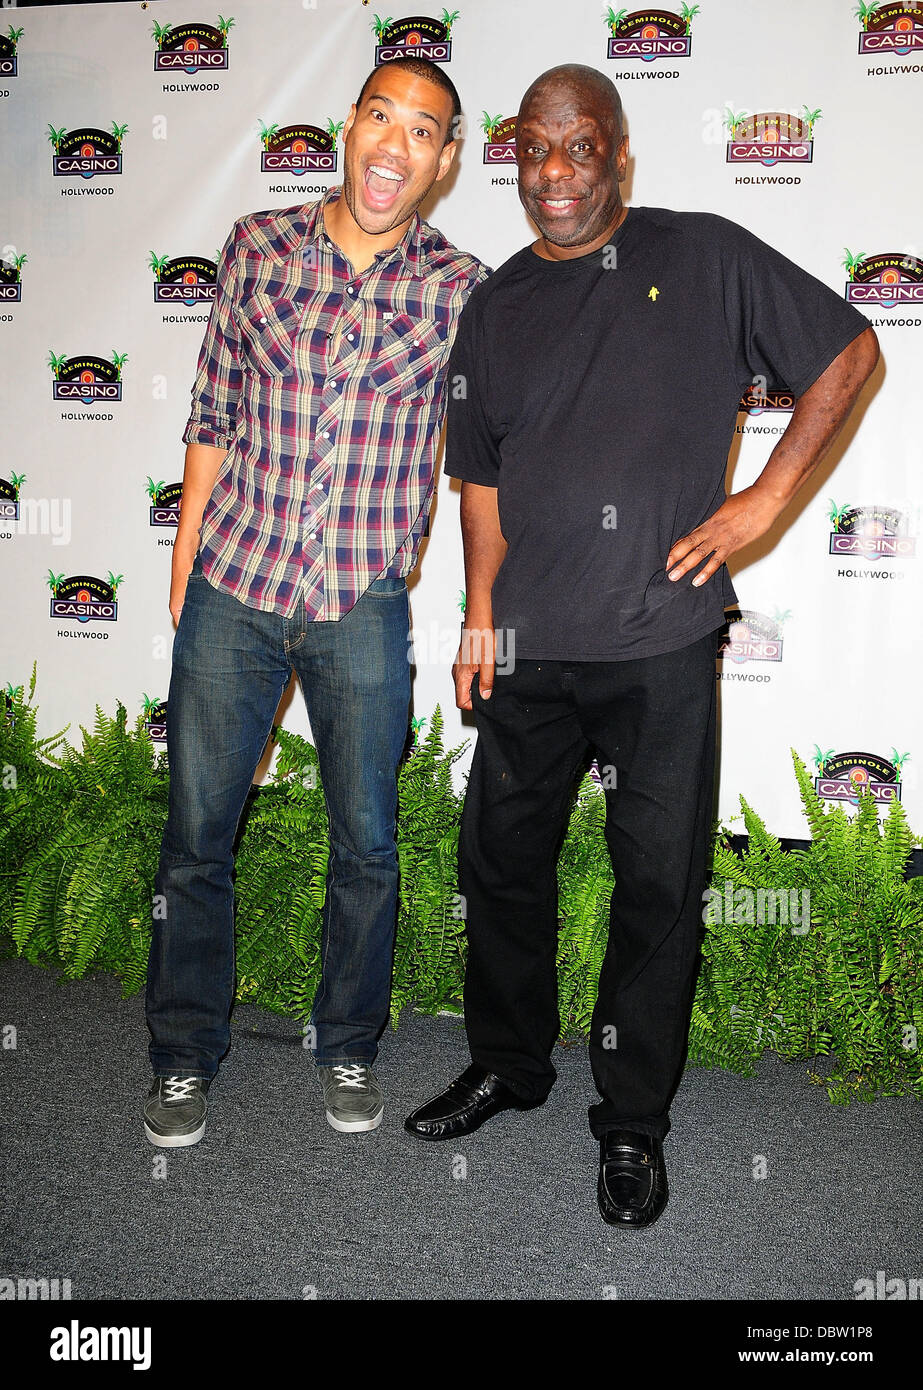 Michael Yo and Jimmie 'JJ' Walker attends the 'Face of Classic $100,000 Dream Job' event at Seminole - Stock Image